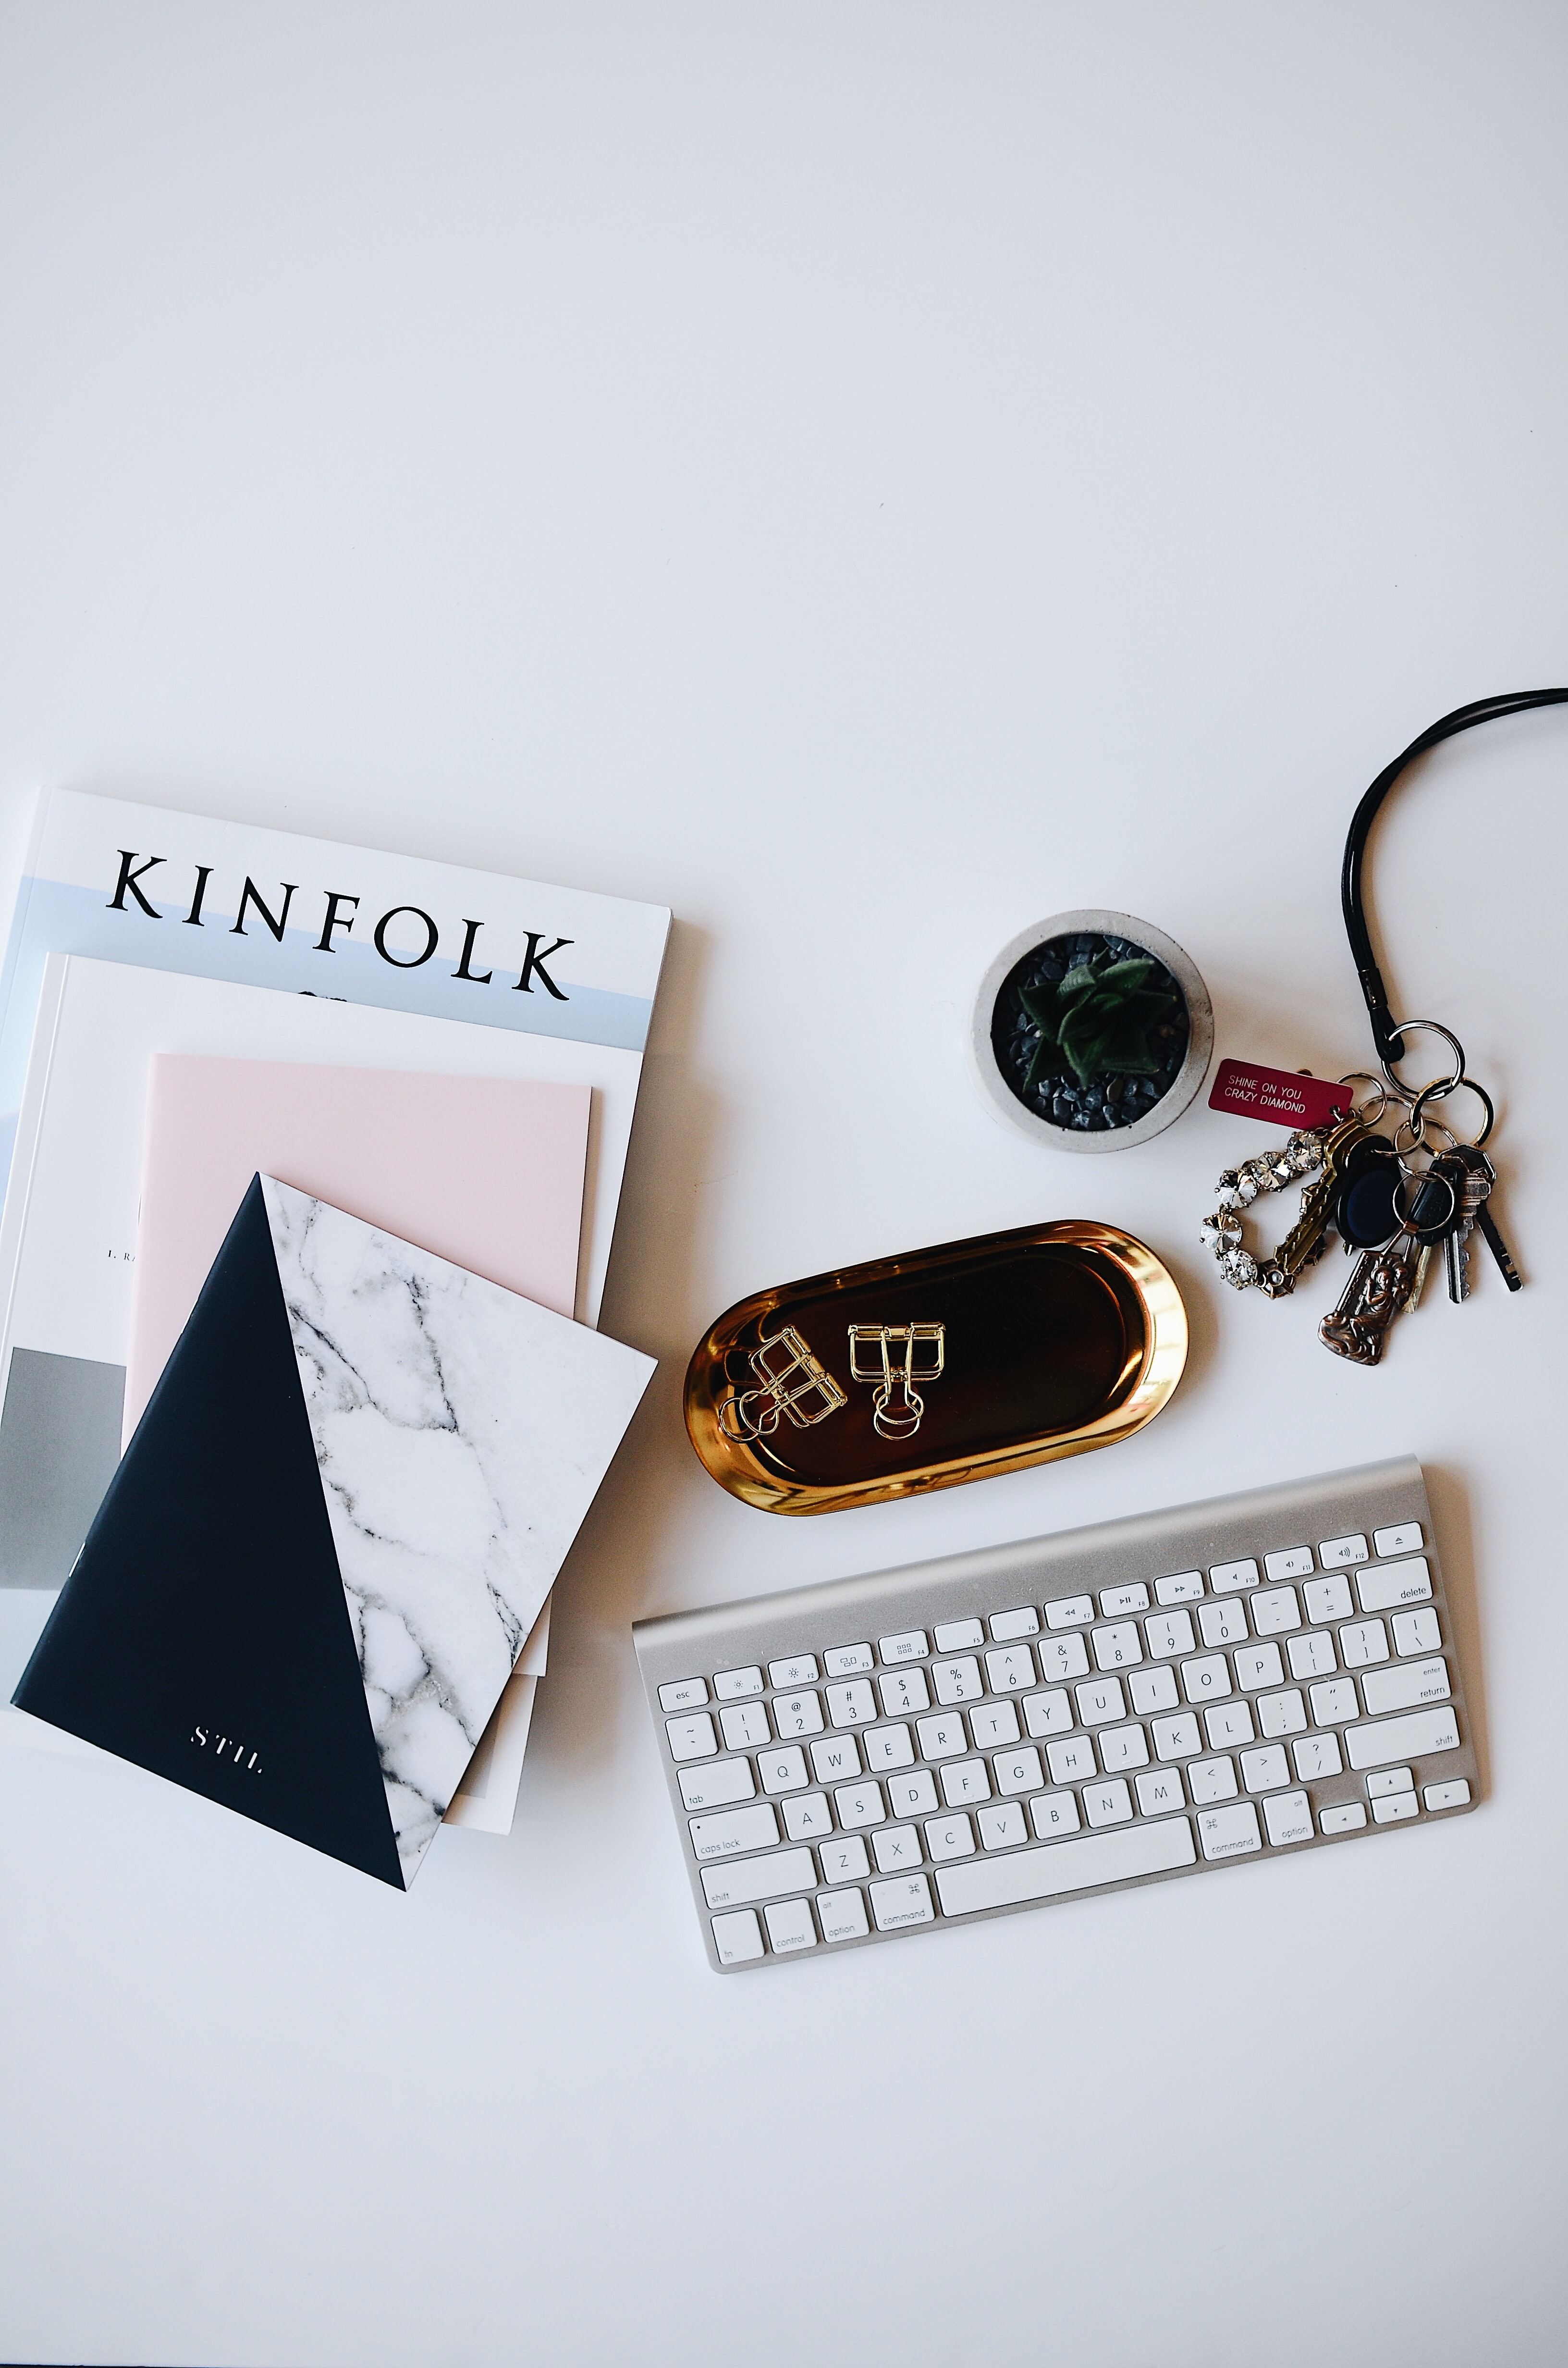 A flatlay image of a keyboard, books and other items.